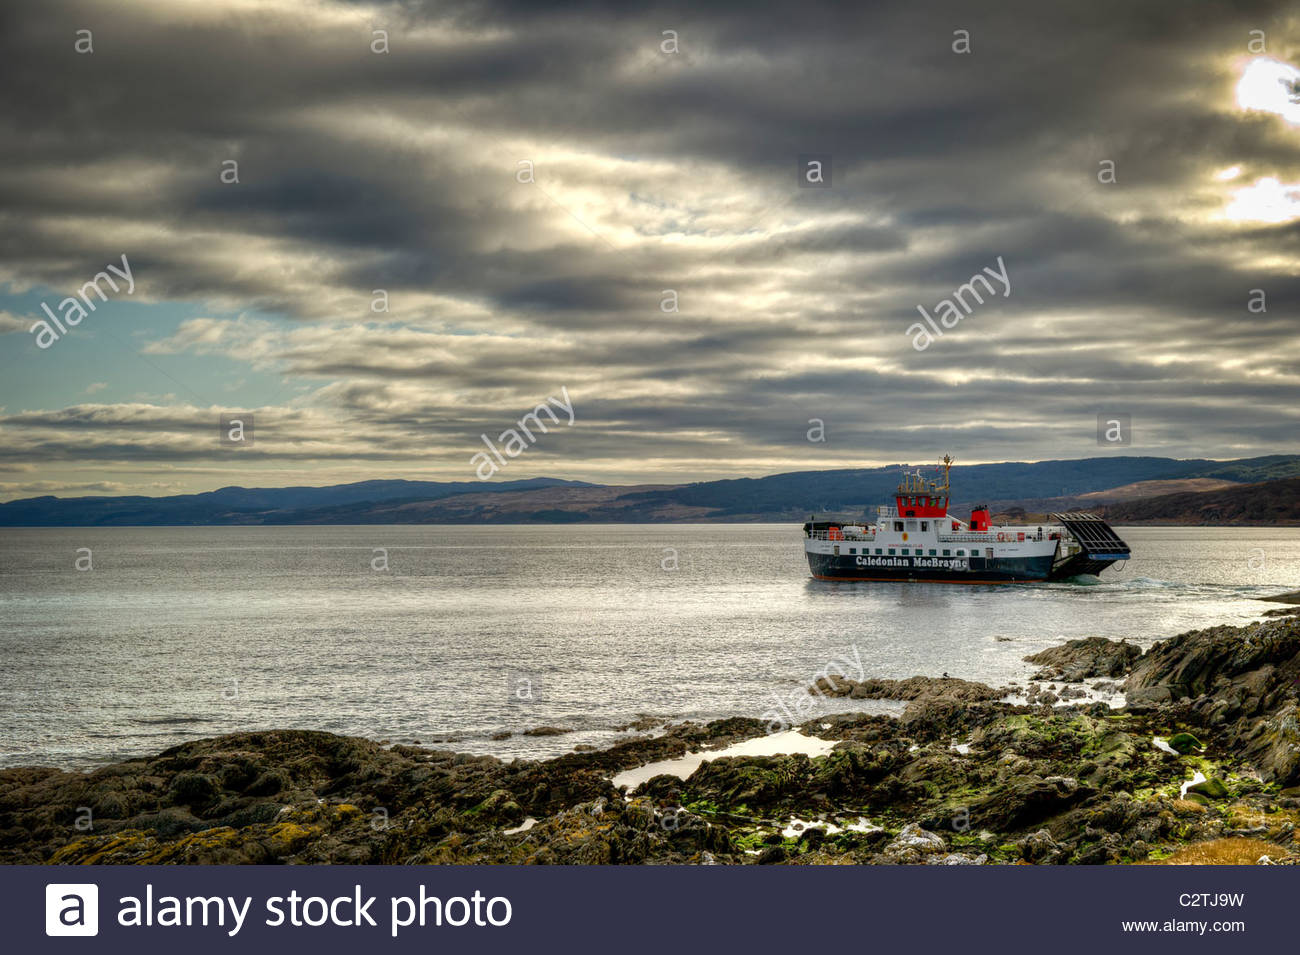 Cal Mac Ferry leaving  from Claonaig on Kintyre to go back over to Lochranza on  Arran. - Stock Image